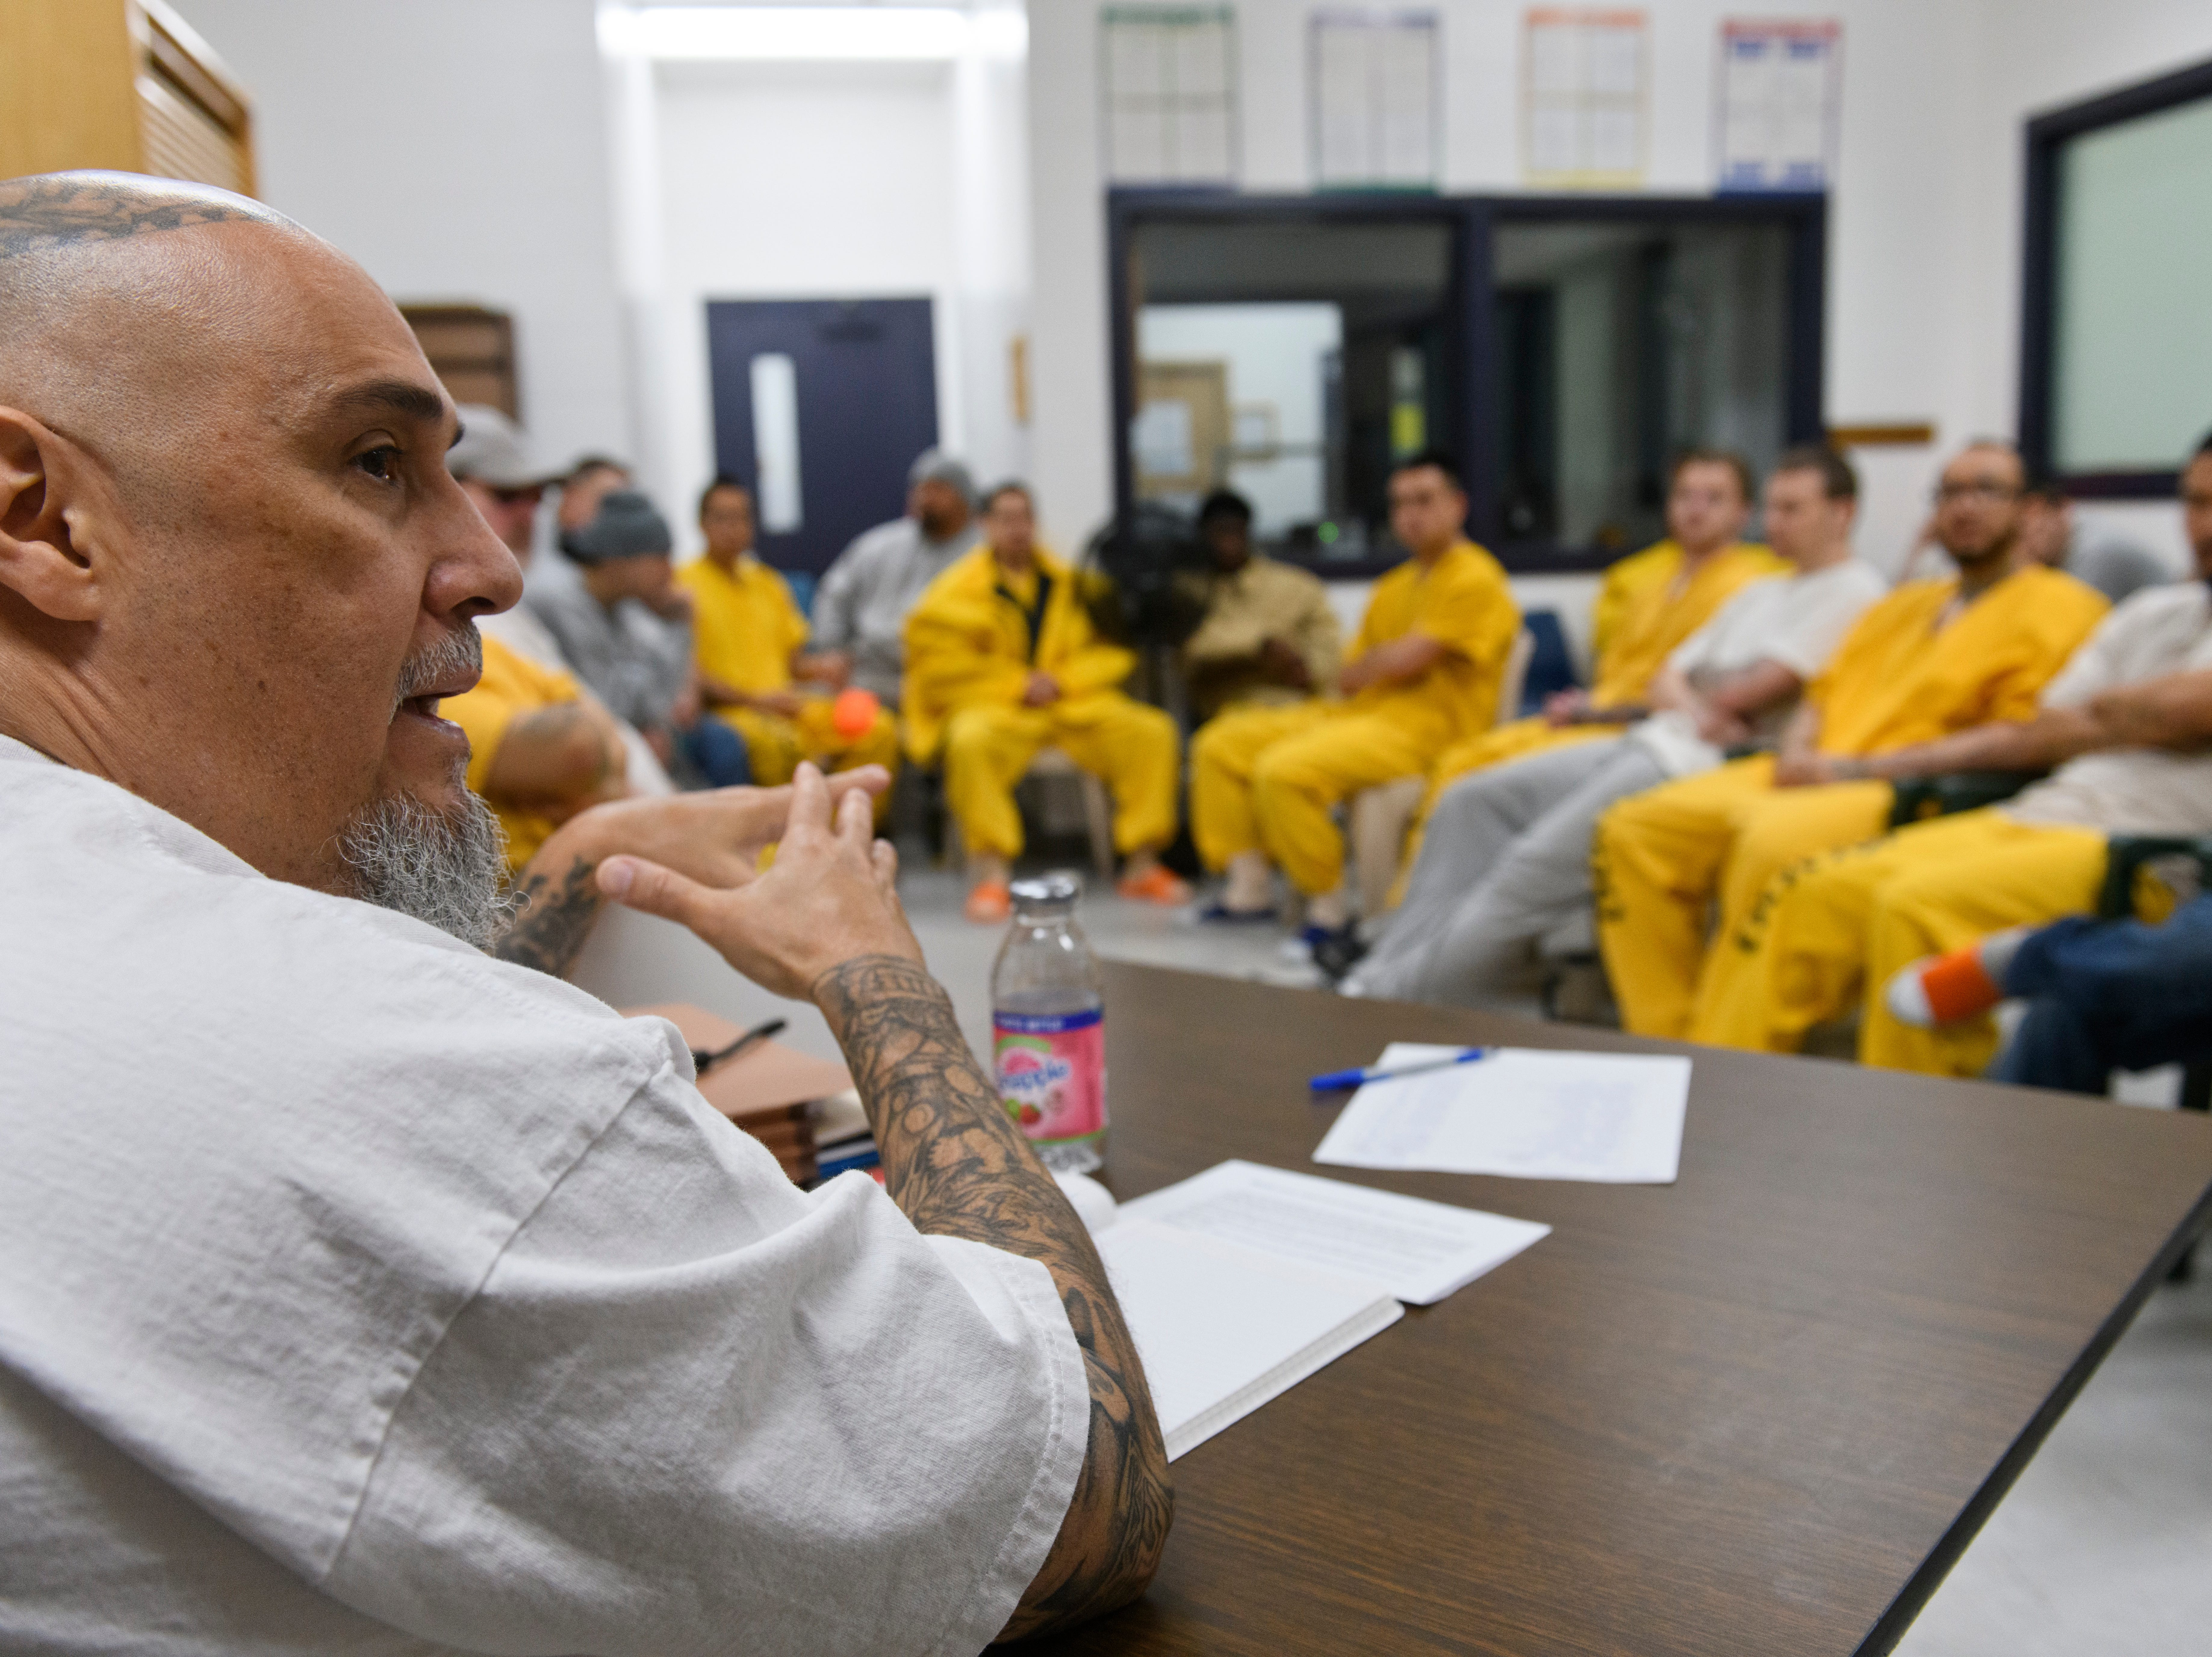 Criminal justice reform: We can improve expensive, ineffective system by lowering recidivism